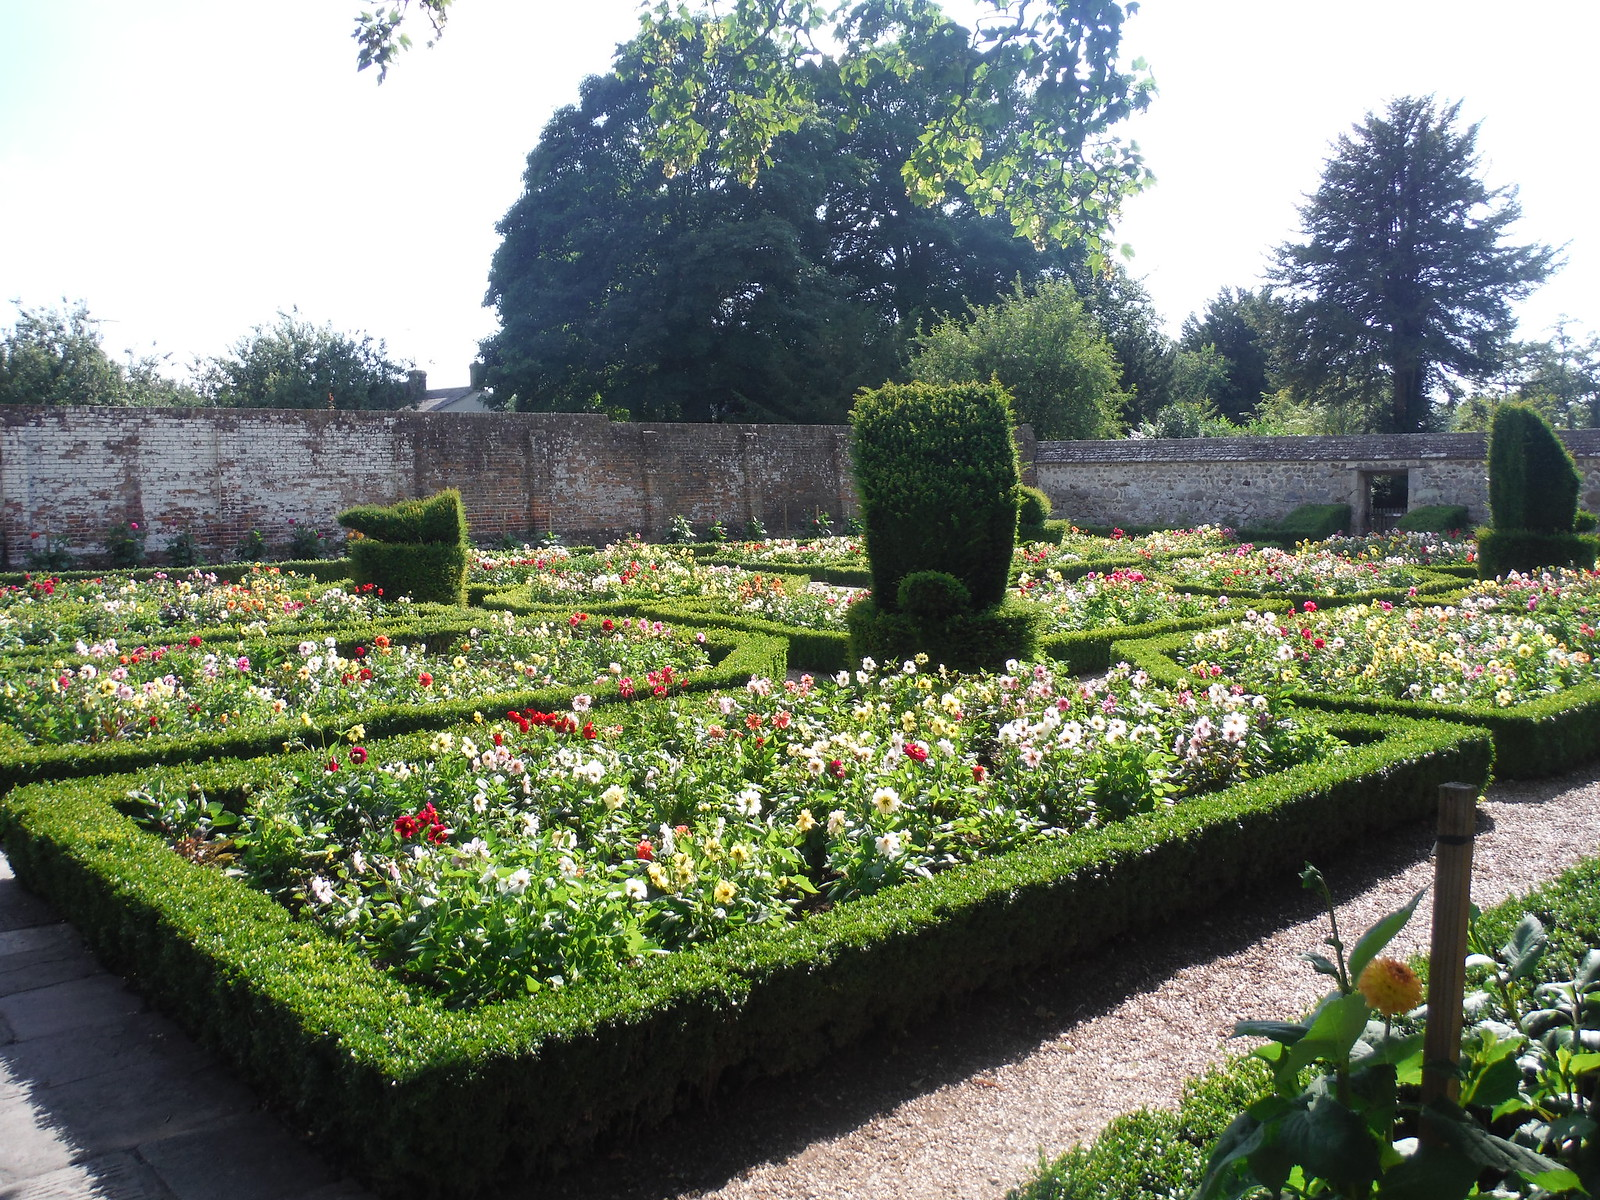 Avebury Manor House Garden SWC Walk 255 Pewsey or Marlborough Circular via Avebury